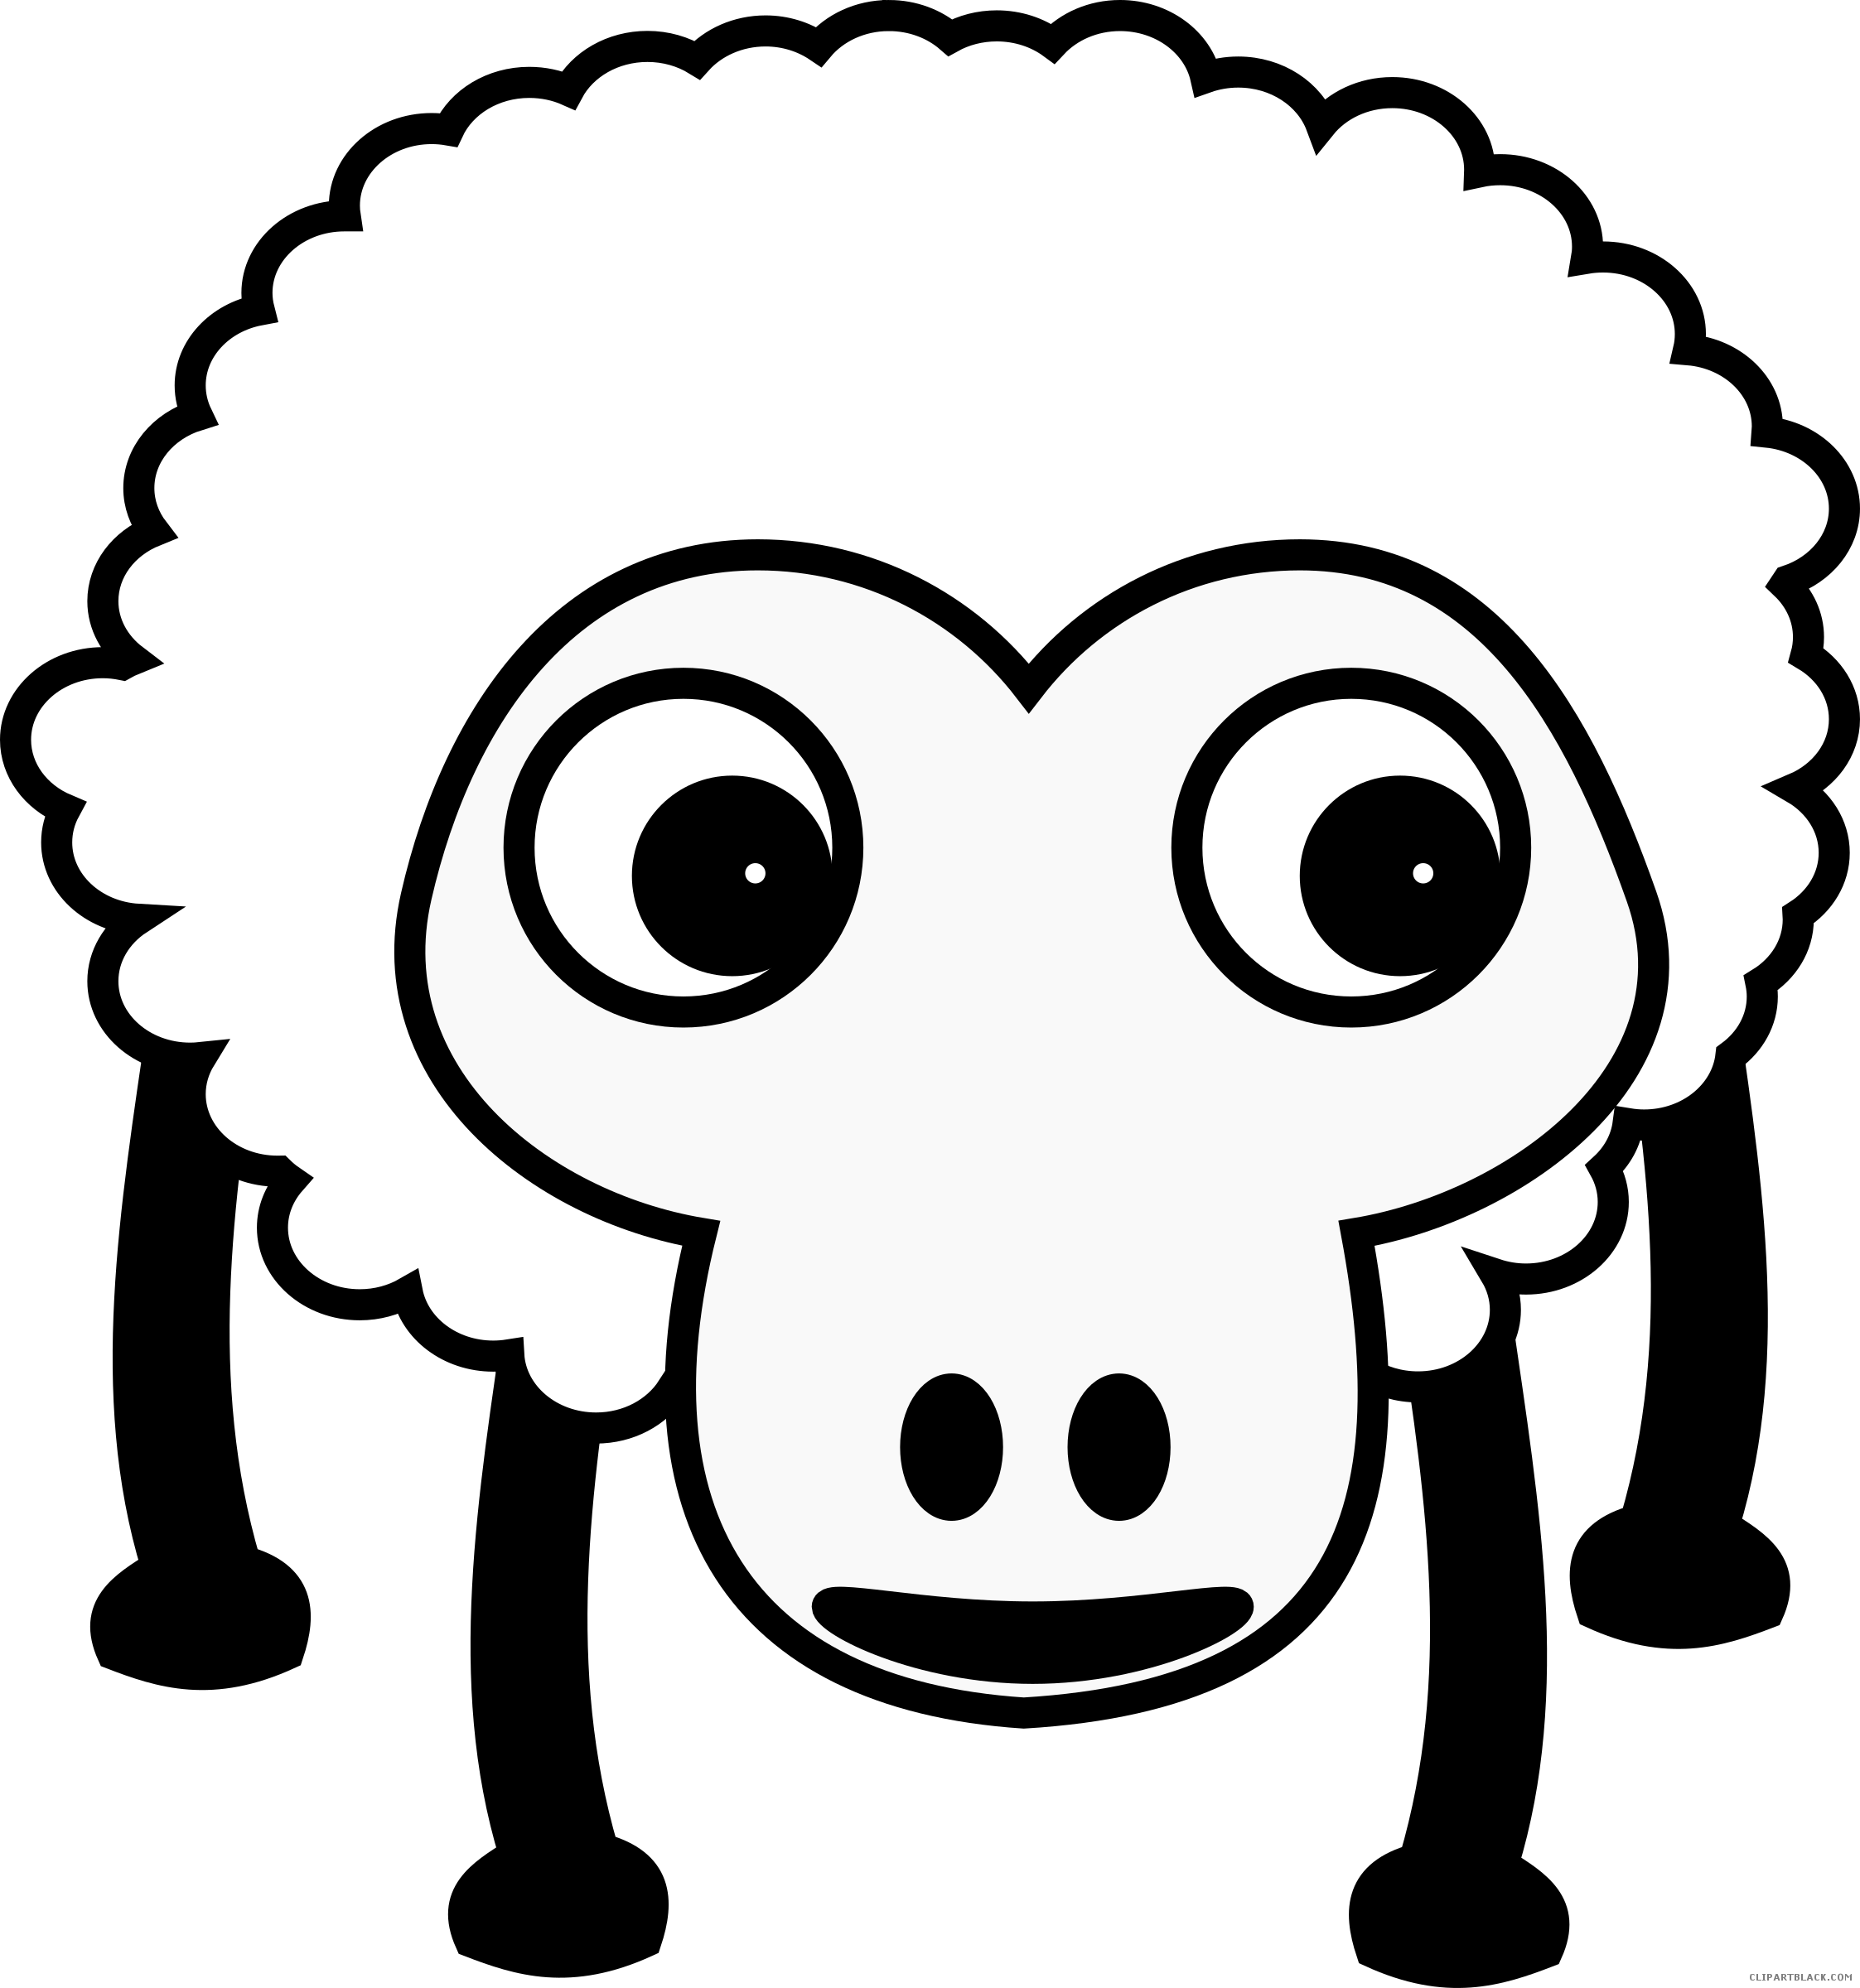 Footprint clipart sheep. Black and white animal